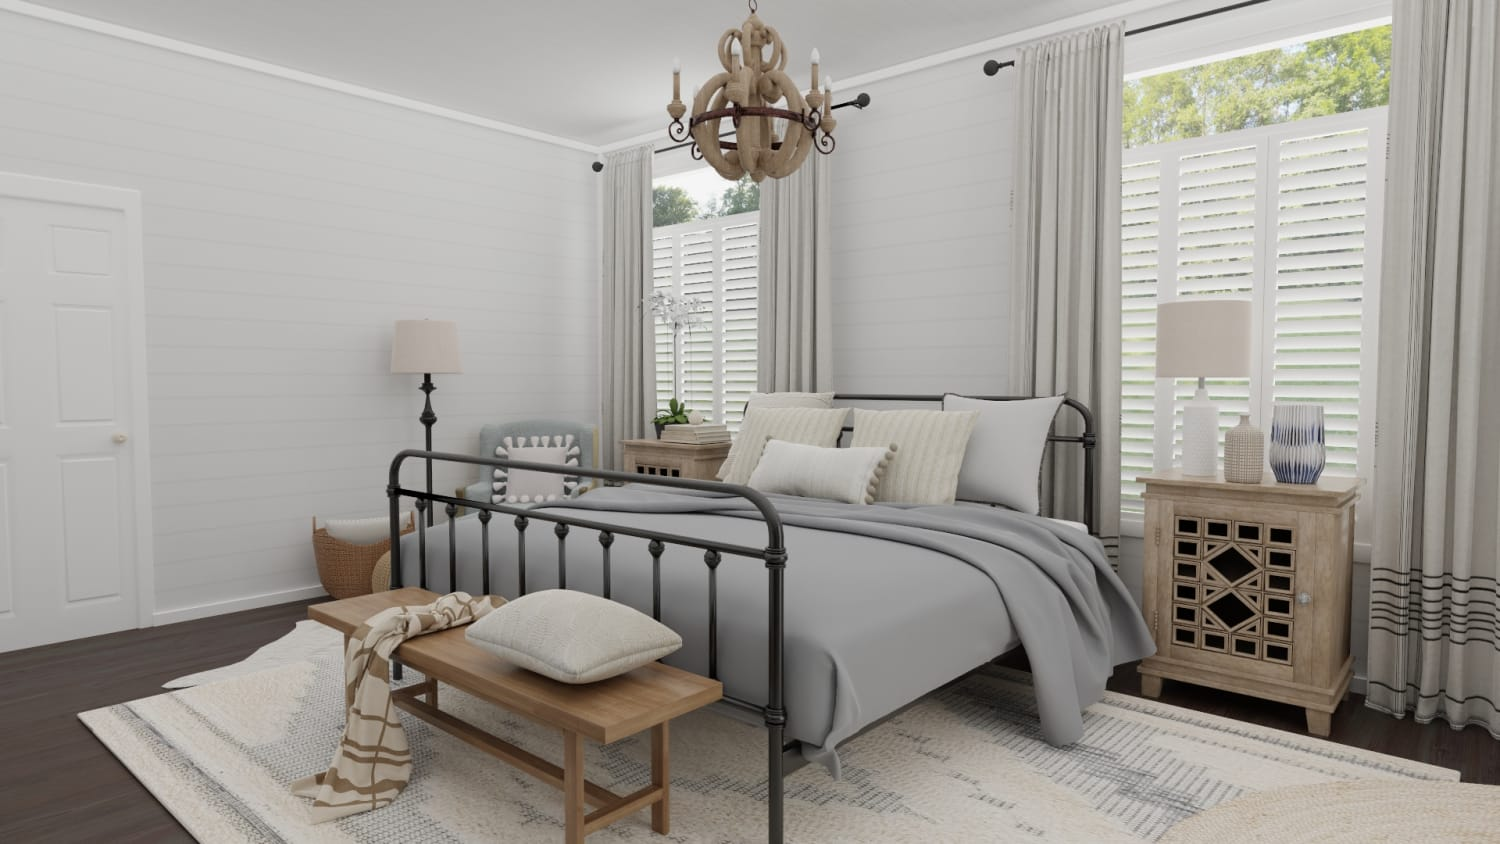 Weekend Retreat: French Country Farmhouse Bedroom Design By Spacejoy